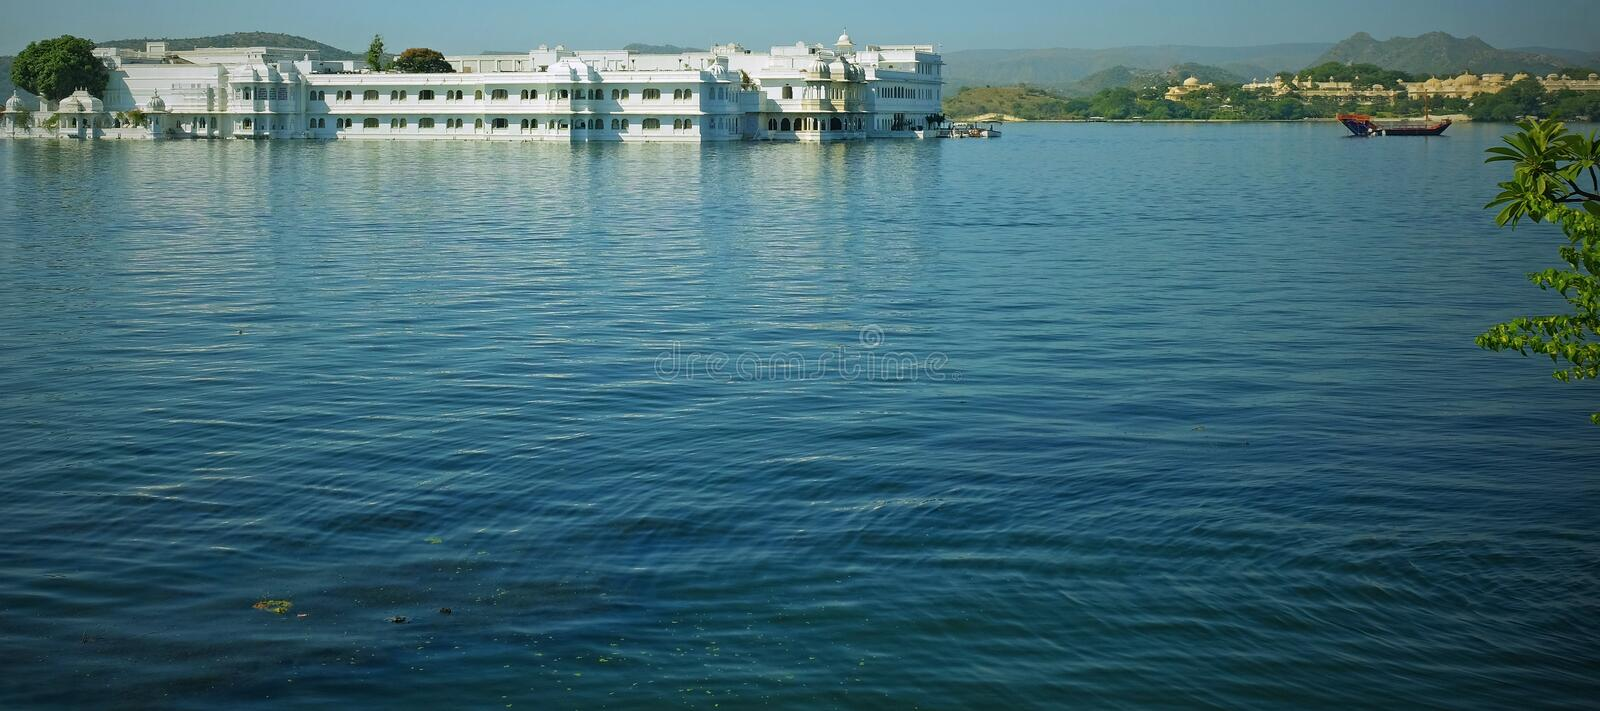 Palace on the lake. UDAIPUR, INDIA - NOVEMBER 10, 2016: View across Lake Pichola with the 18th century white marble palace, known as the Jag Niwas, and the royalty free stock photo